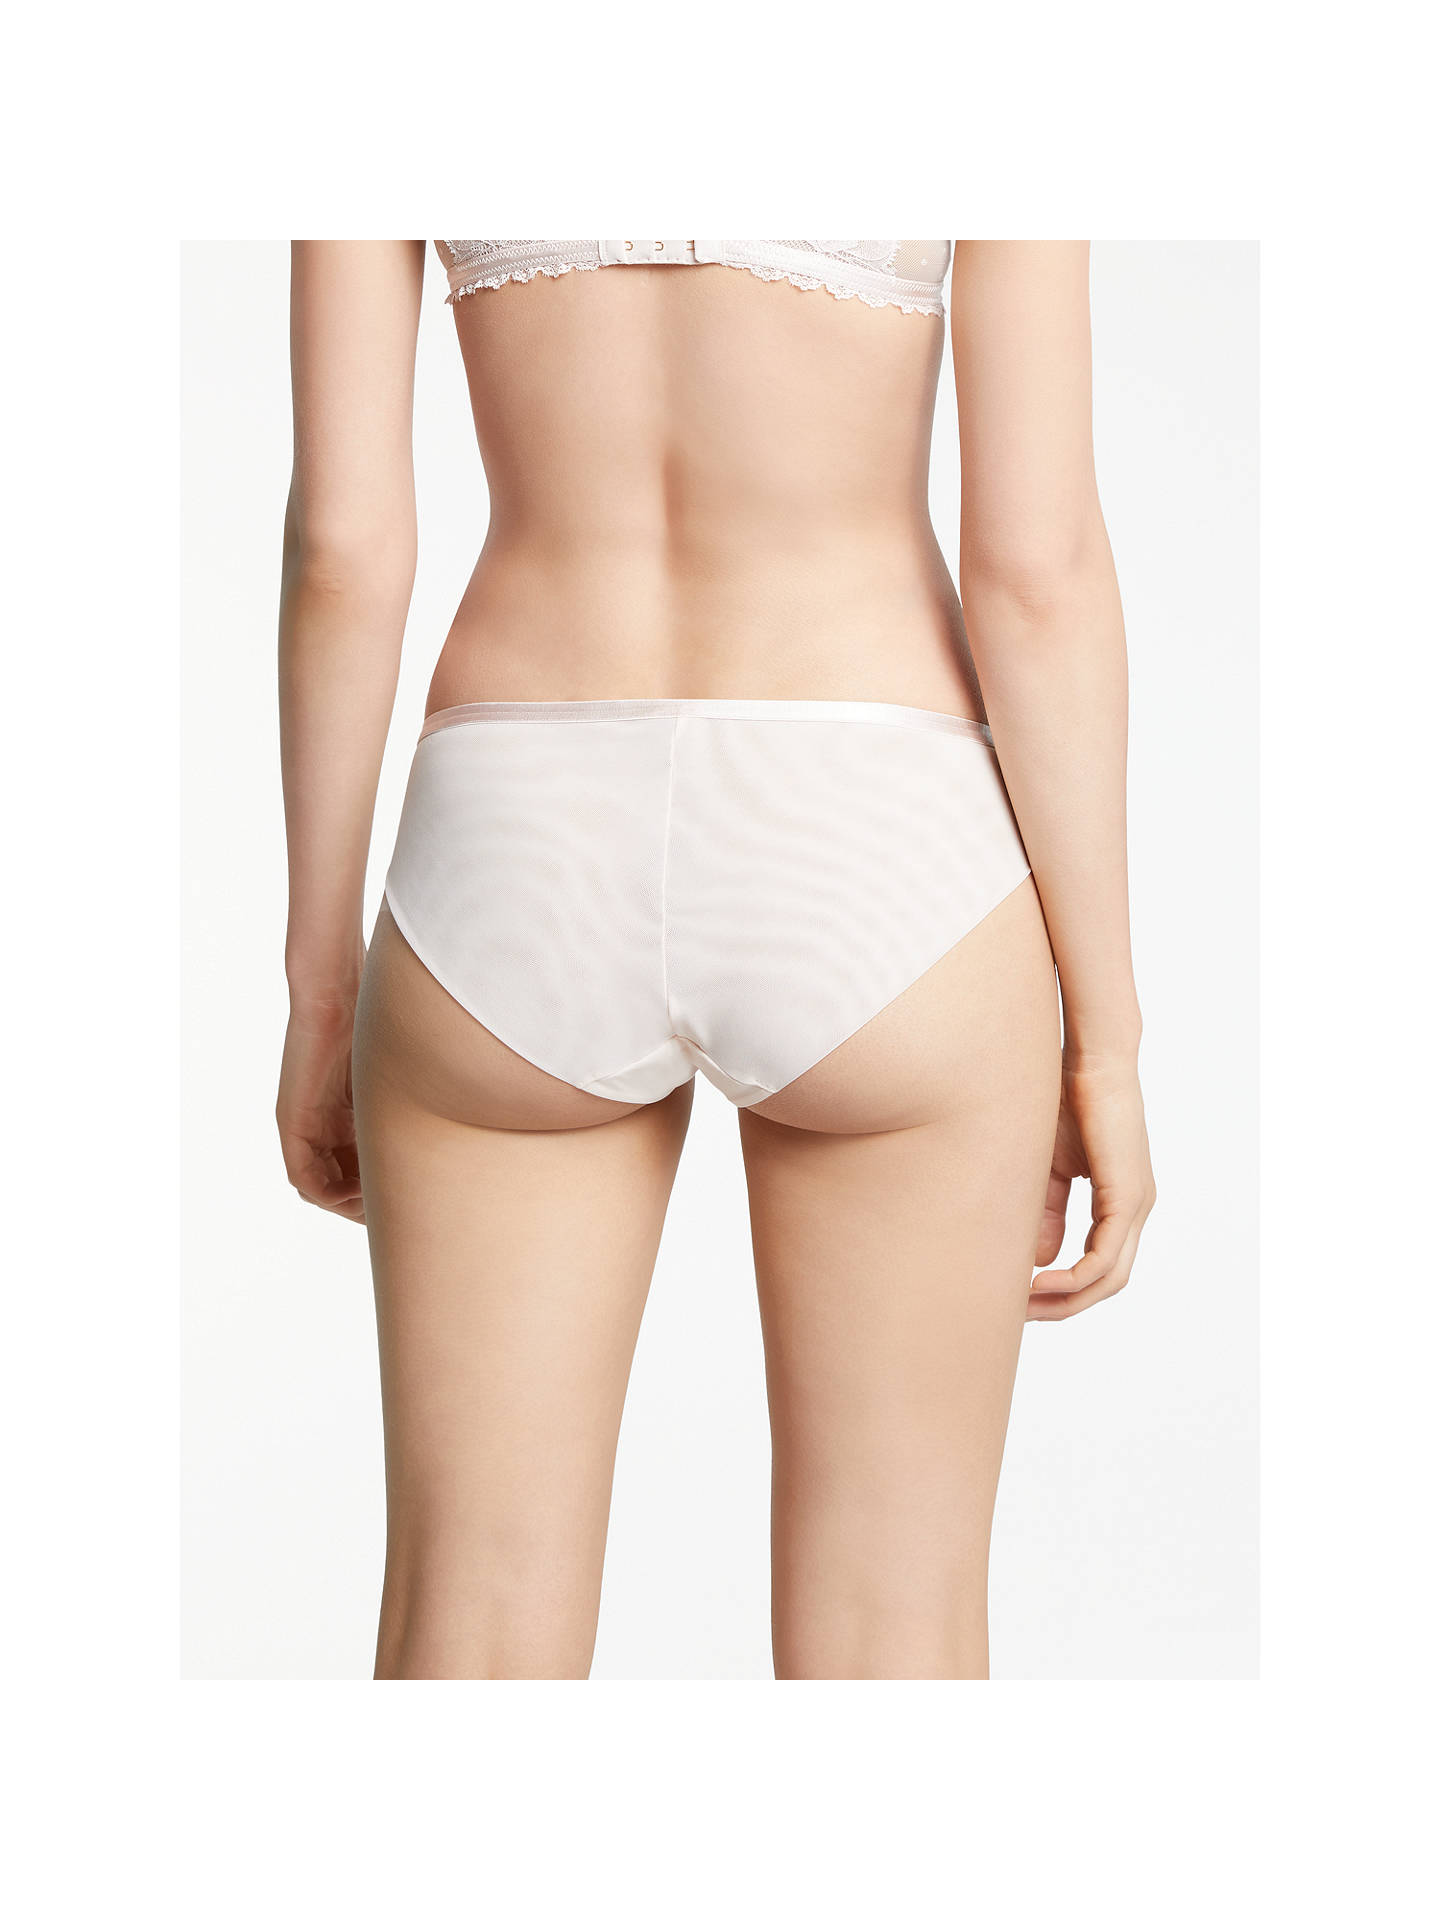 BuyAND/OR Arabella Lace Briefs, Gossamer Pink, 8 Online at johnlewis.com